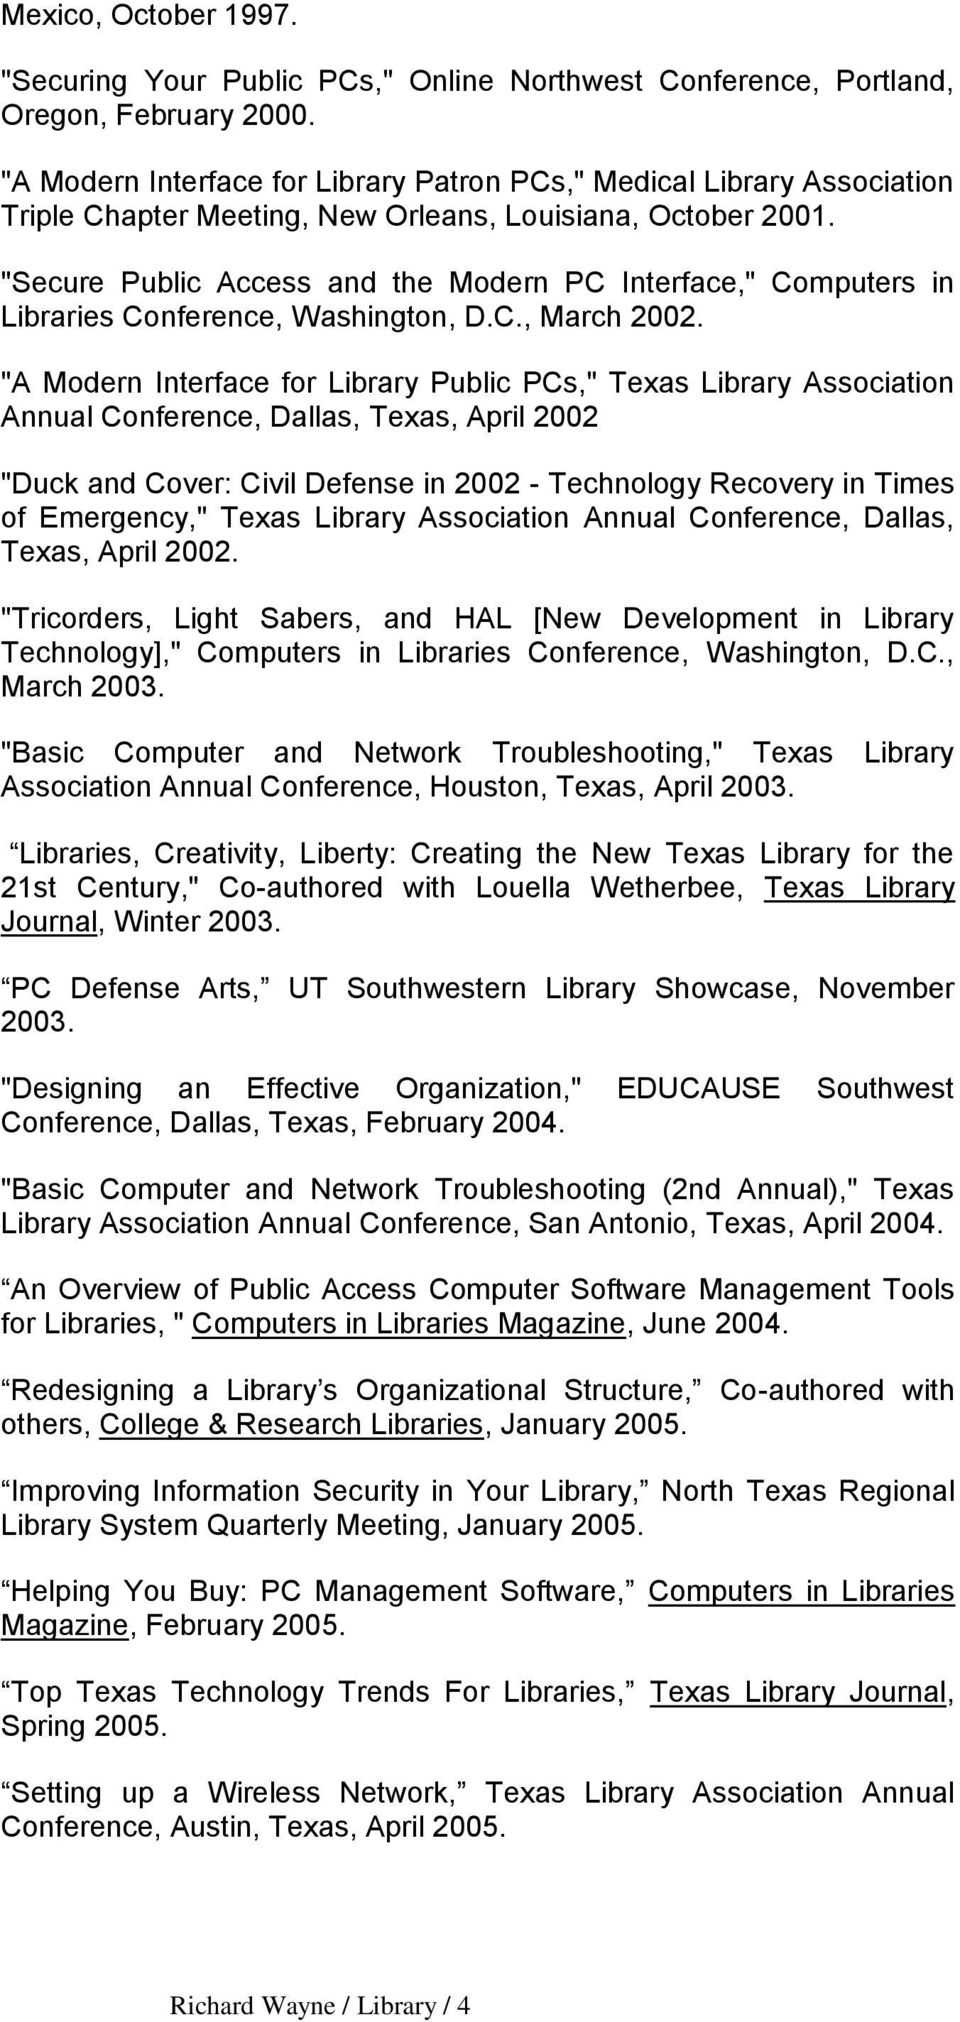 """Secure Public Access and the Modern PC Interface,"" Computers in Libraries Conference, Washington, D.C., March 2002."